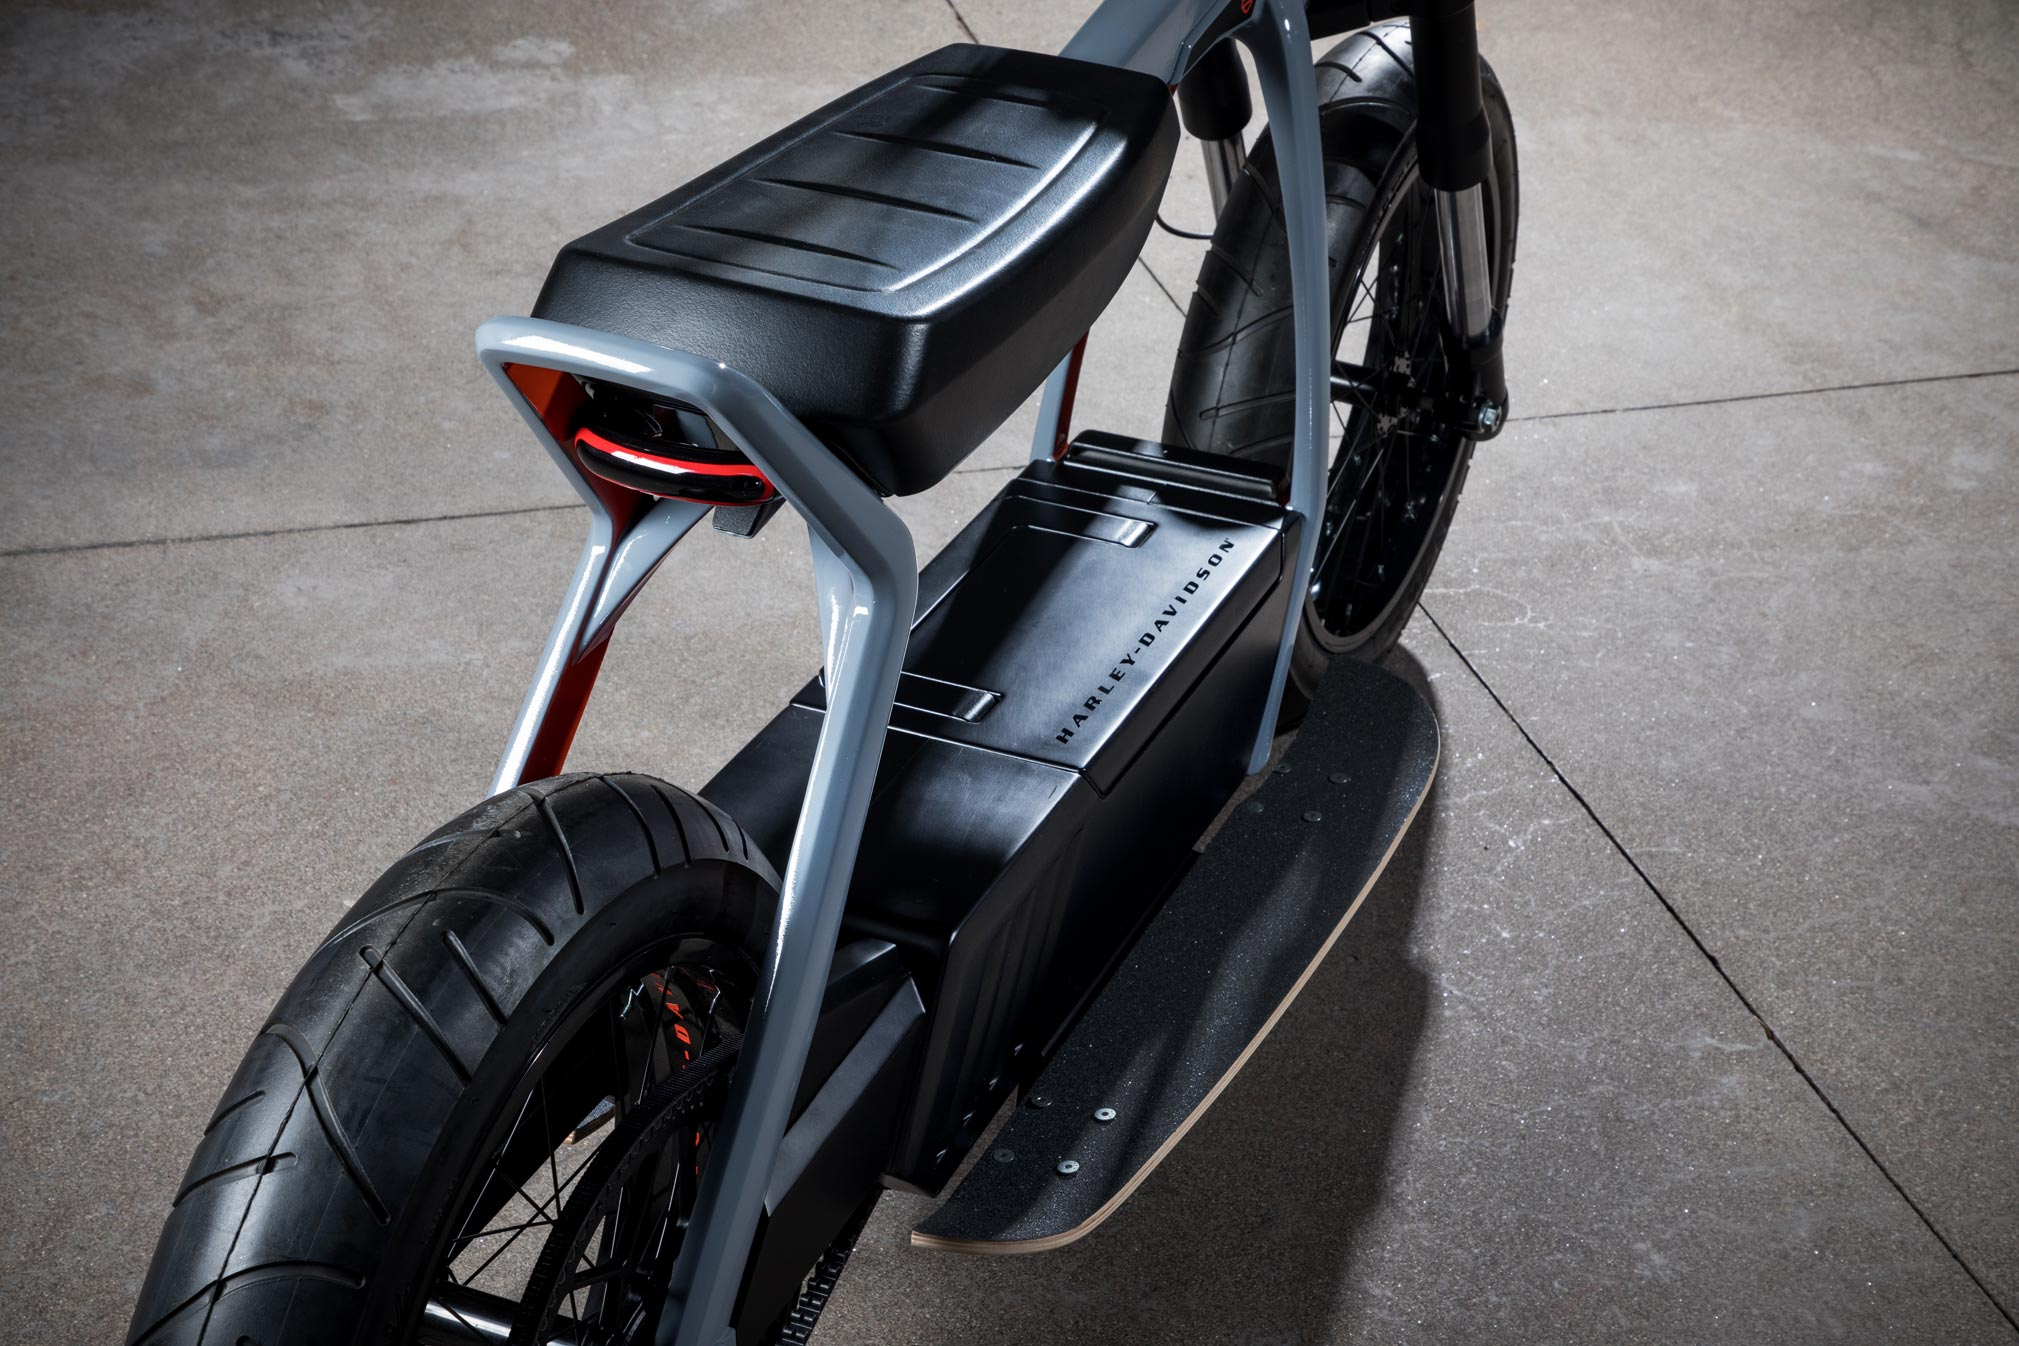 2020 harley davidson electric scooter guide total motorcycle. Black Bedroom Furniture Sets. Home Design Ideas